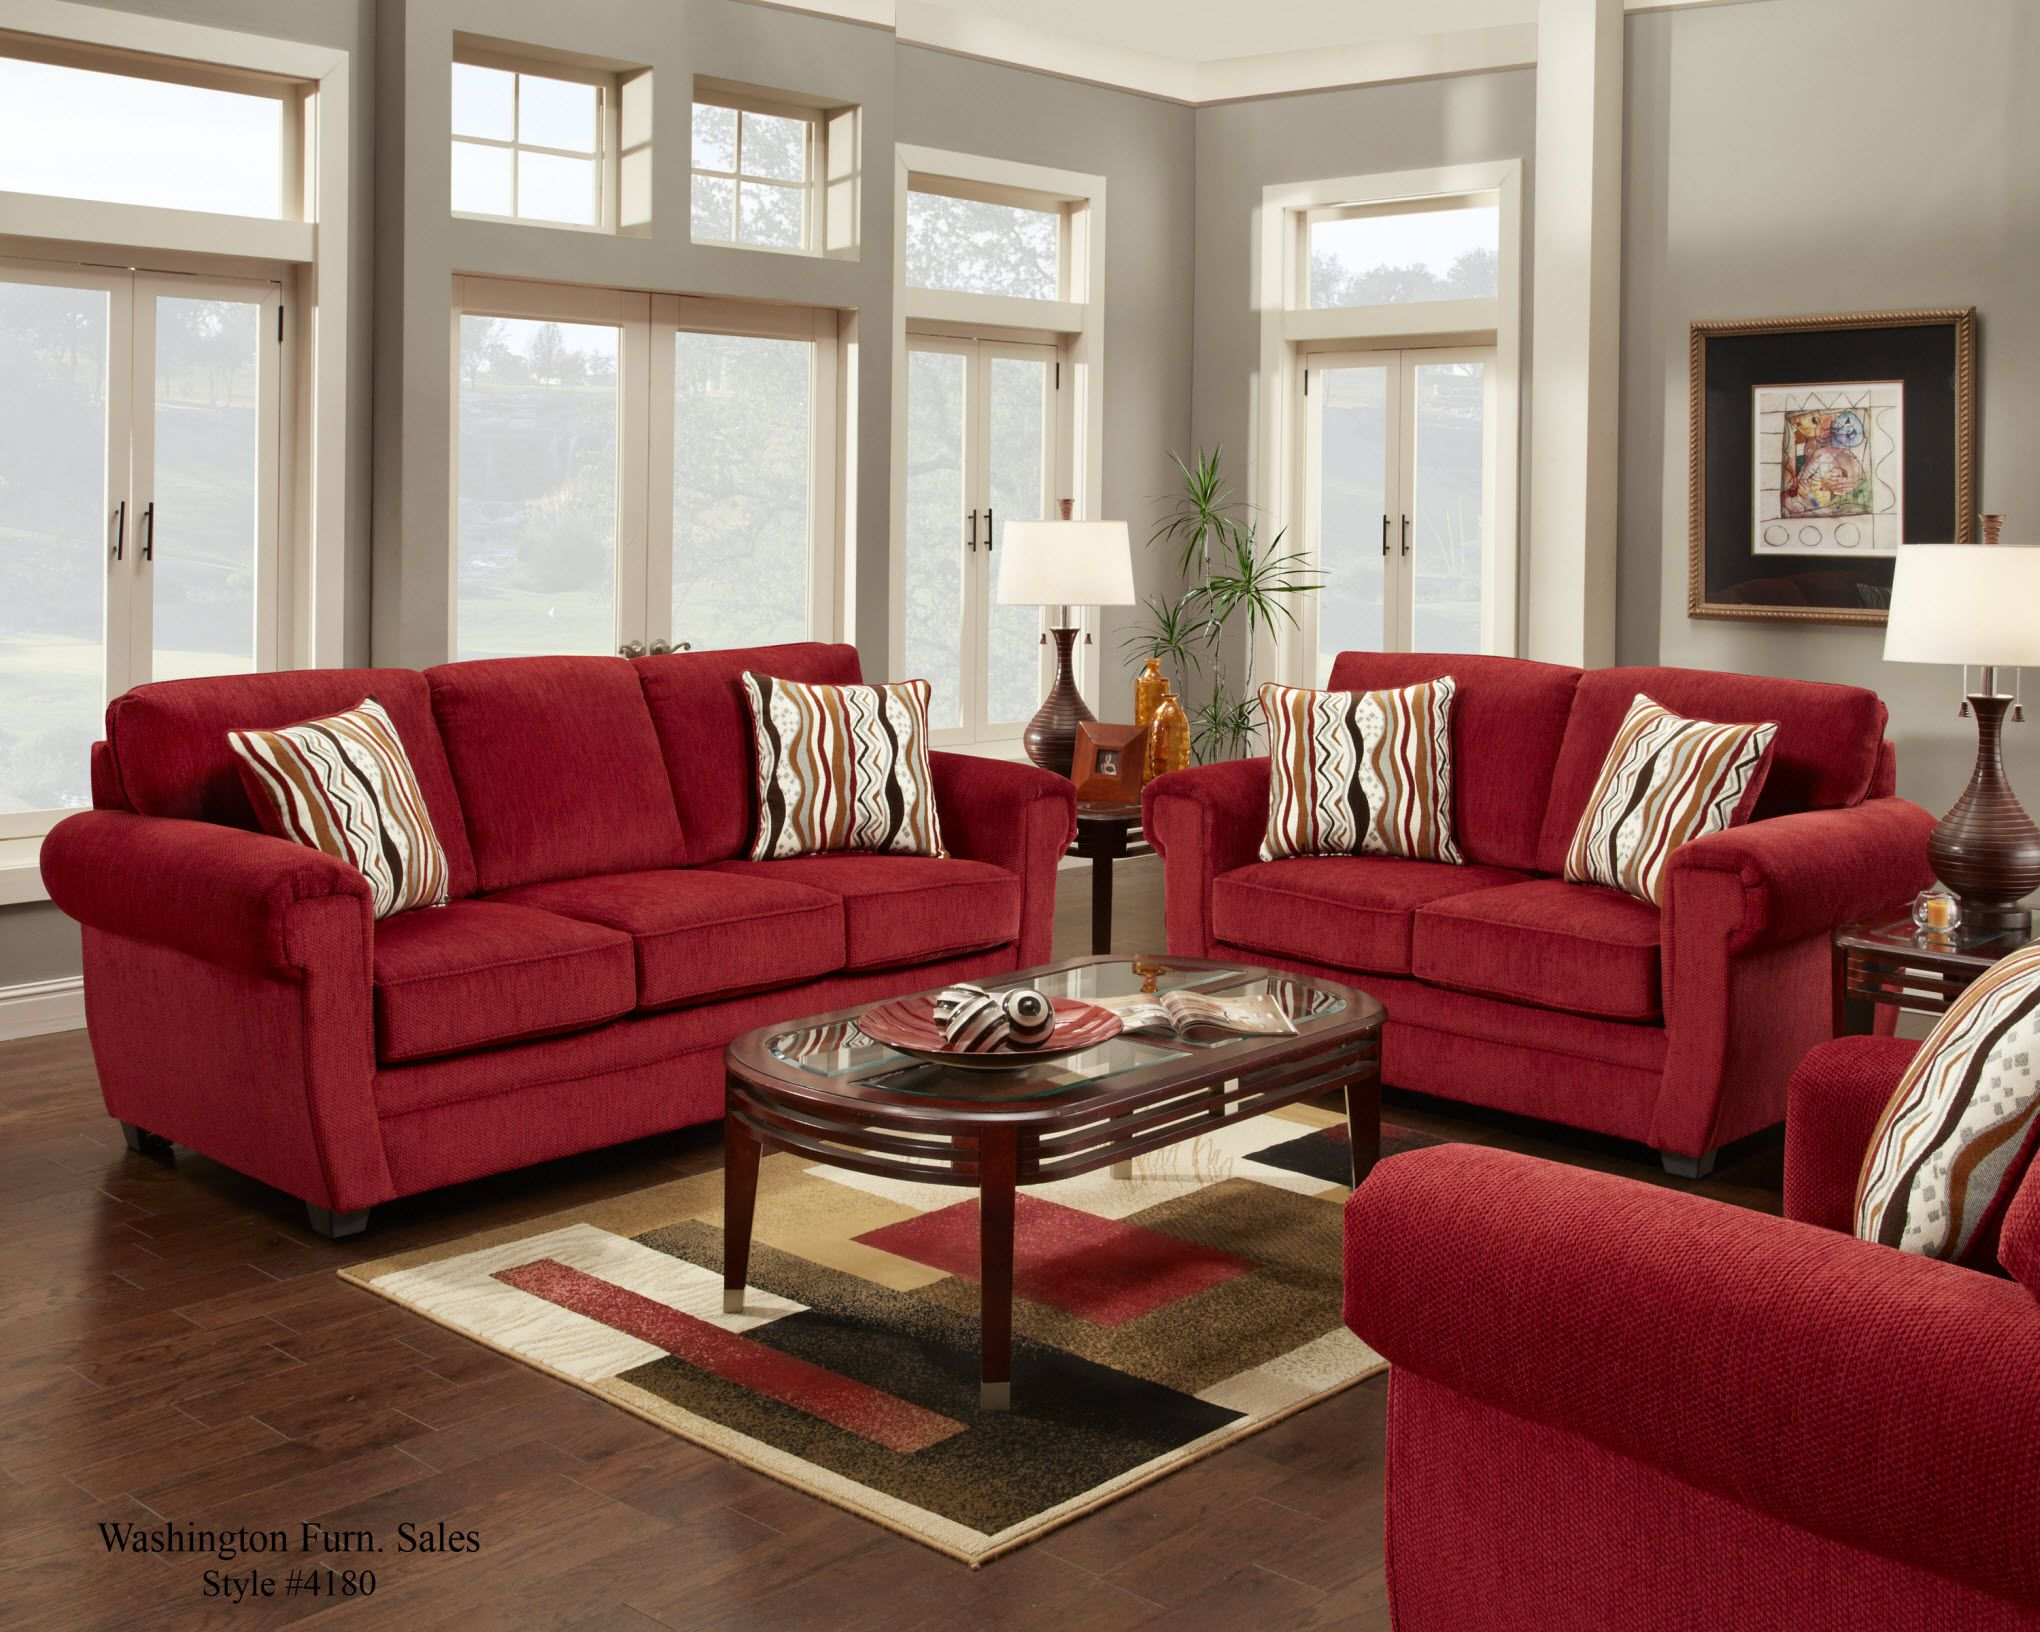 Red Couches Living Room Red Furniture Living Room Red Couch Living Room Red Couch Decor